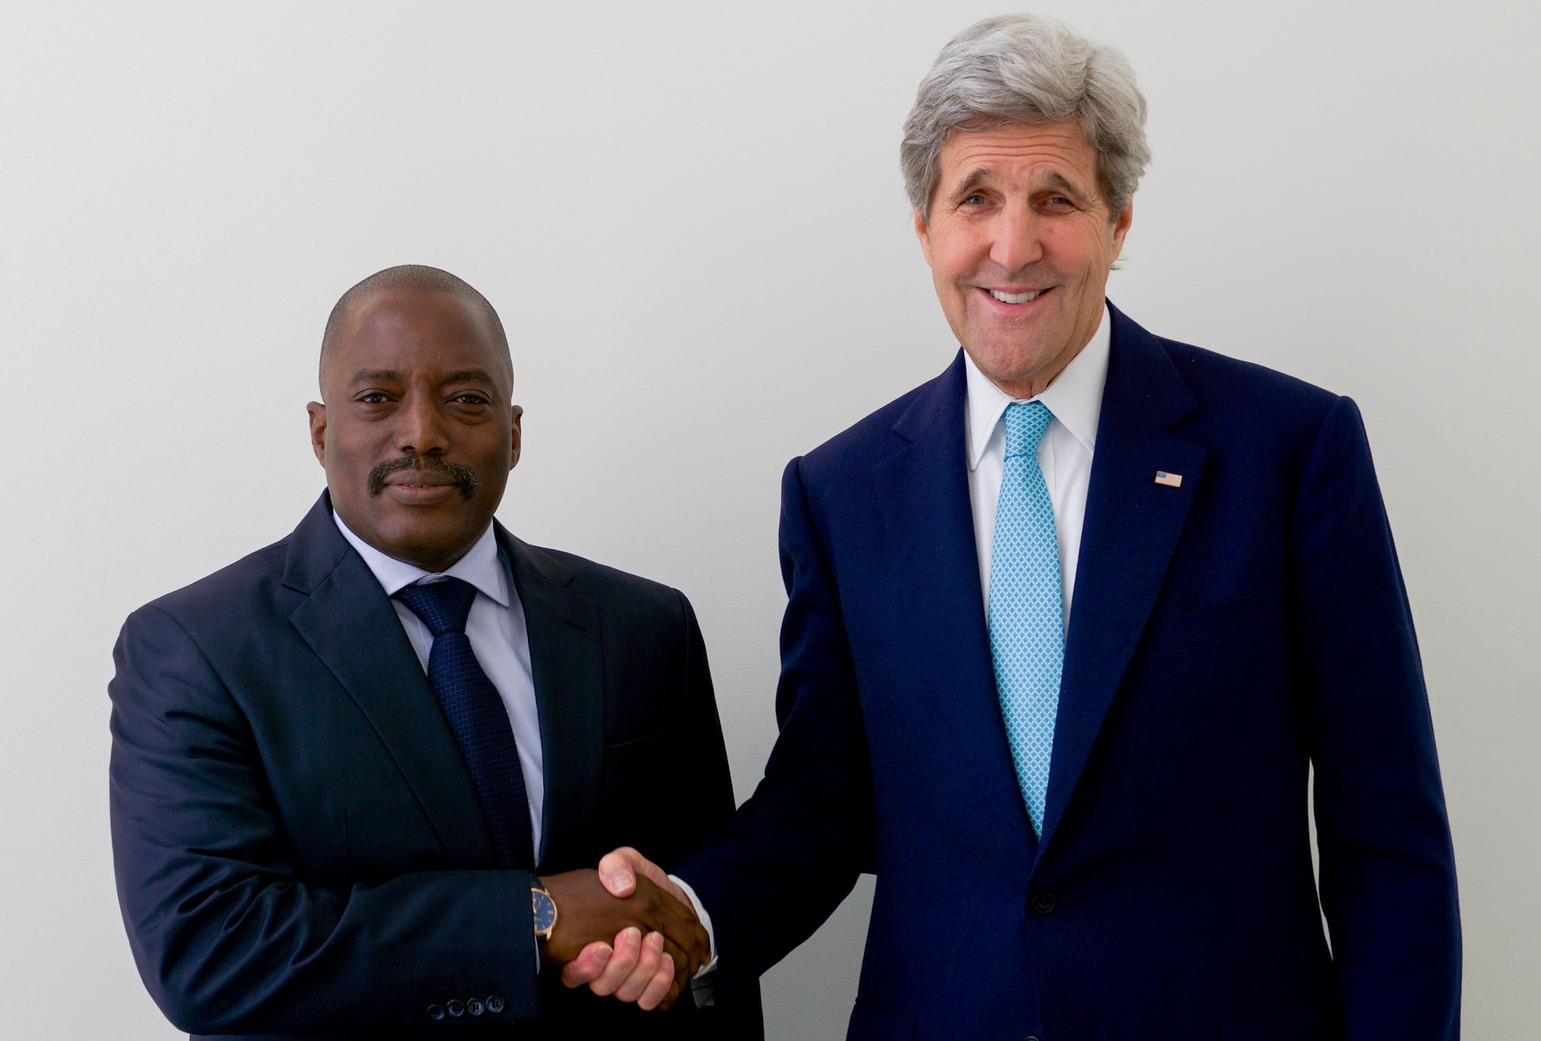 Photo: U.S. Secretary of State John Kerry shakes hands with DRC President Joseph Kabila during a brief bilateral meeting after they signed the COP21 Climate Change Agreement on Earth Day, April 22, 2016, at the United Nations Headquarters in New York, N.Y. [State Department photo/ Public Domain]